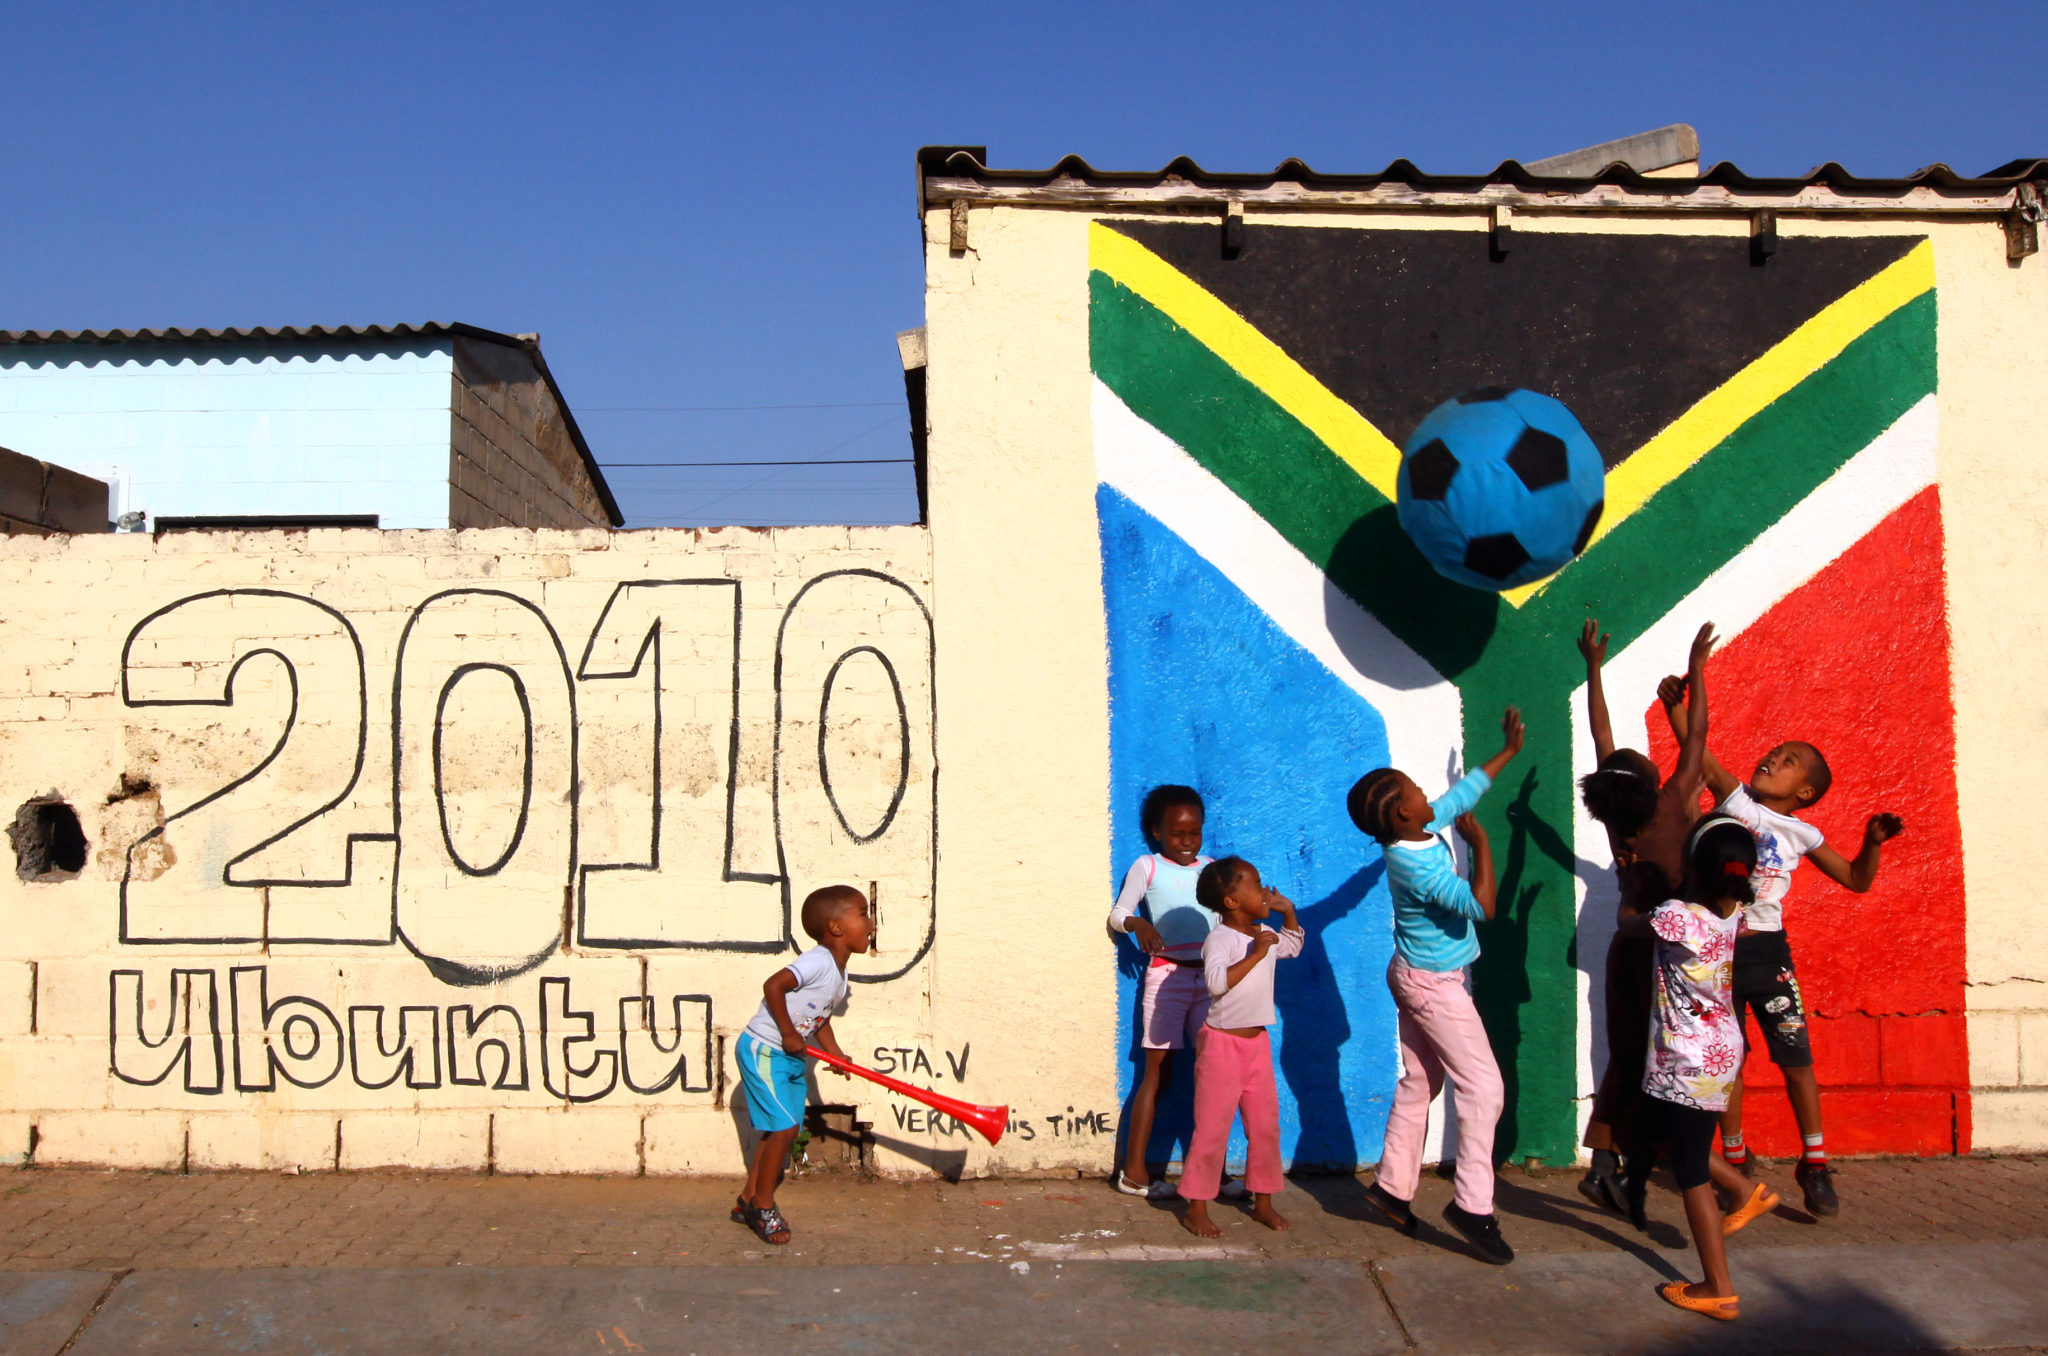 24 May 2010, Children play with a ball in Westbury near Johannesburg. With 17 days to go until the first game of the 2010 World Cup soccer fever is taking over the country. Picture: Shayne Robinson